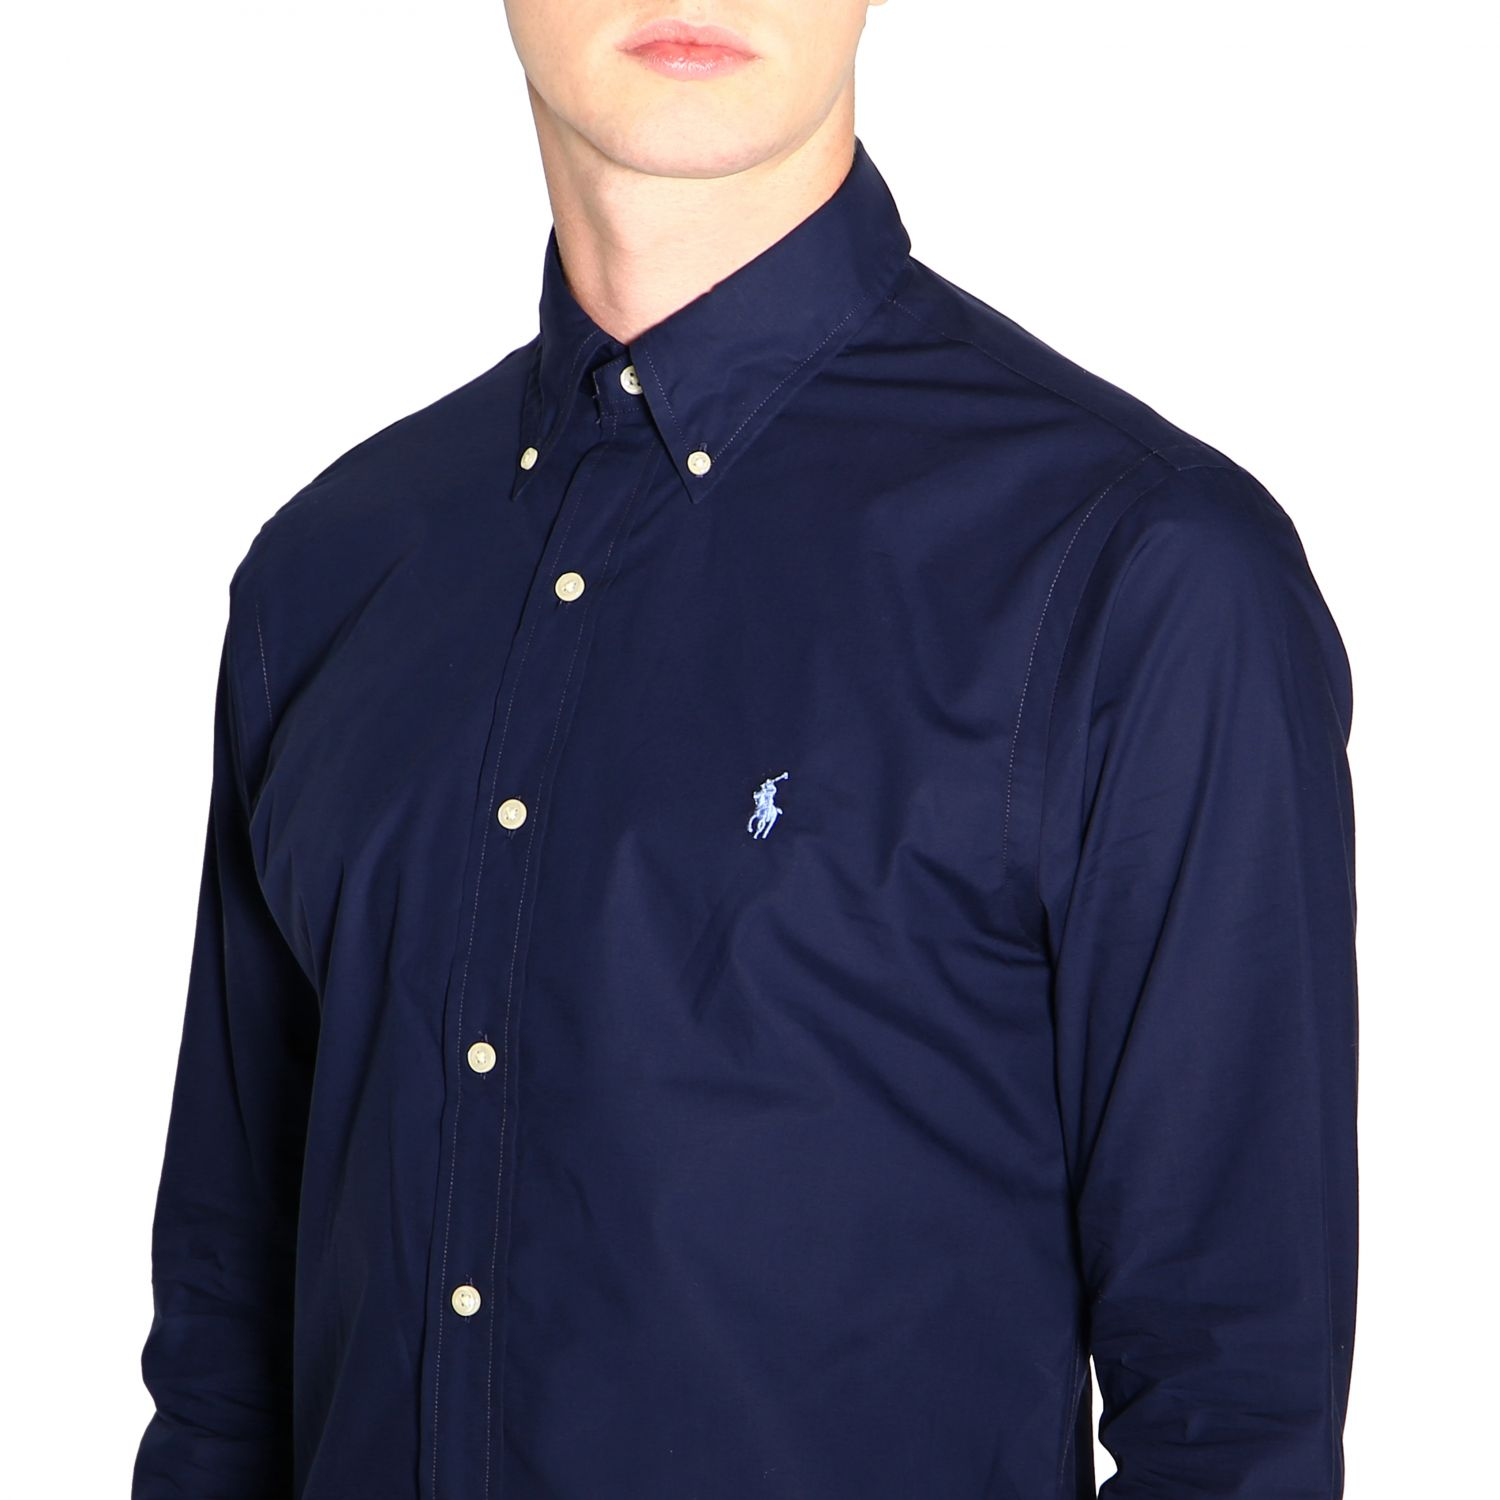 Camicia custom fit natural stretch con collo button down e logo Polo Ralph Lauren blue 5